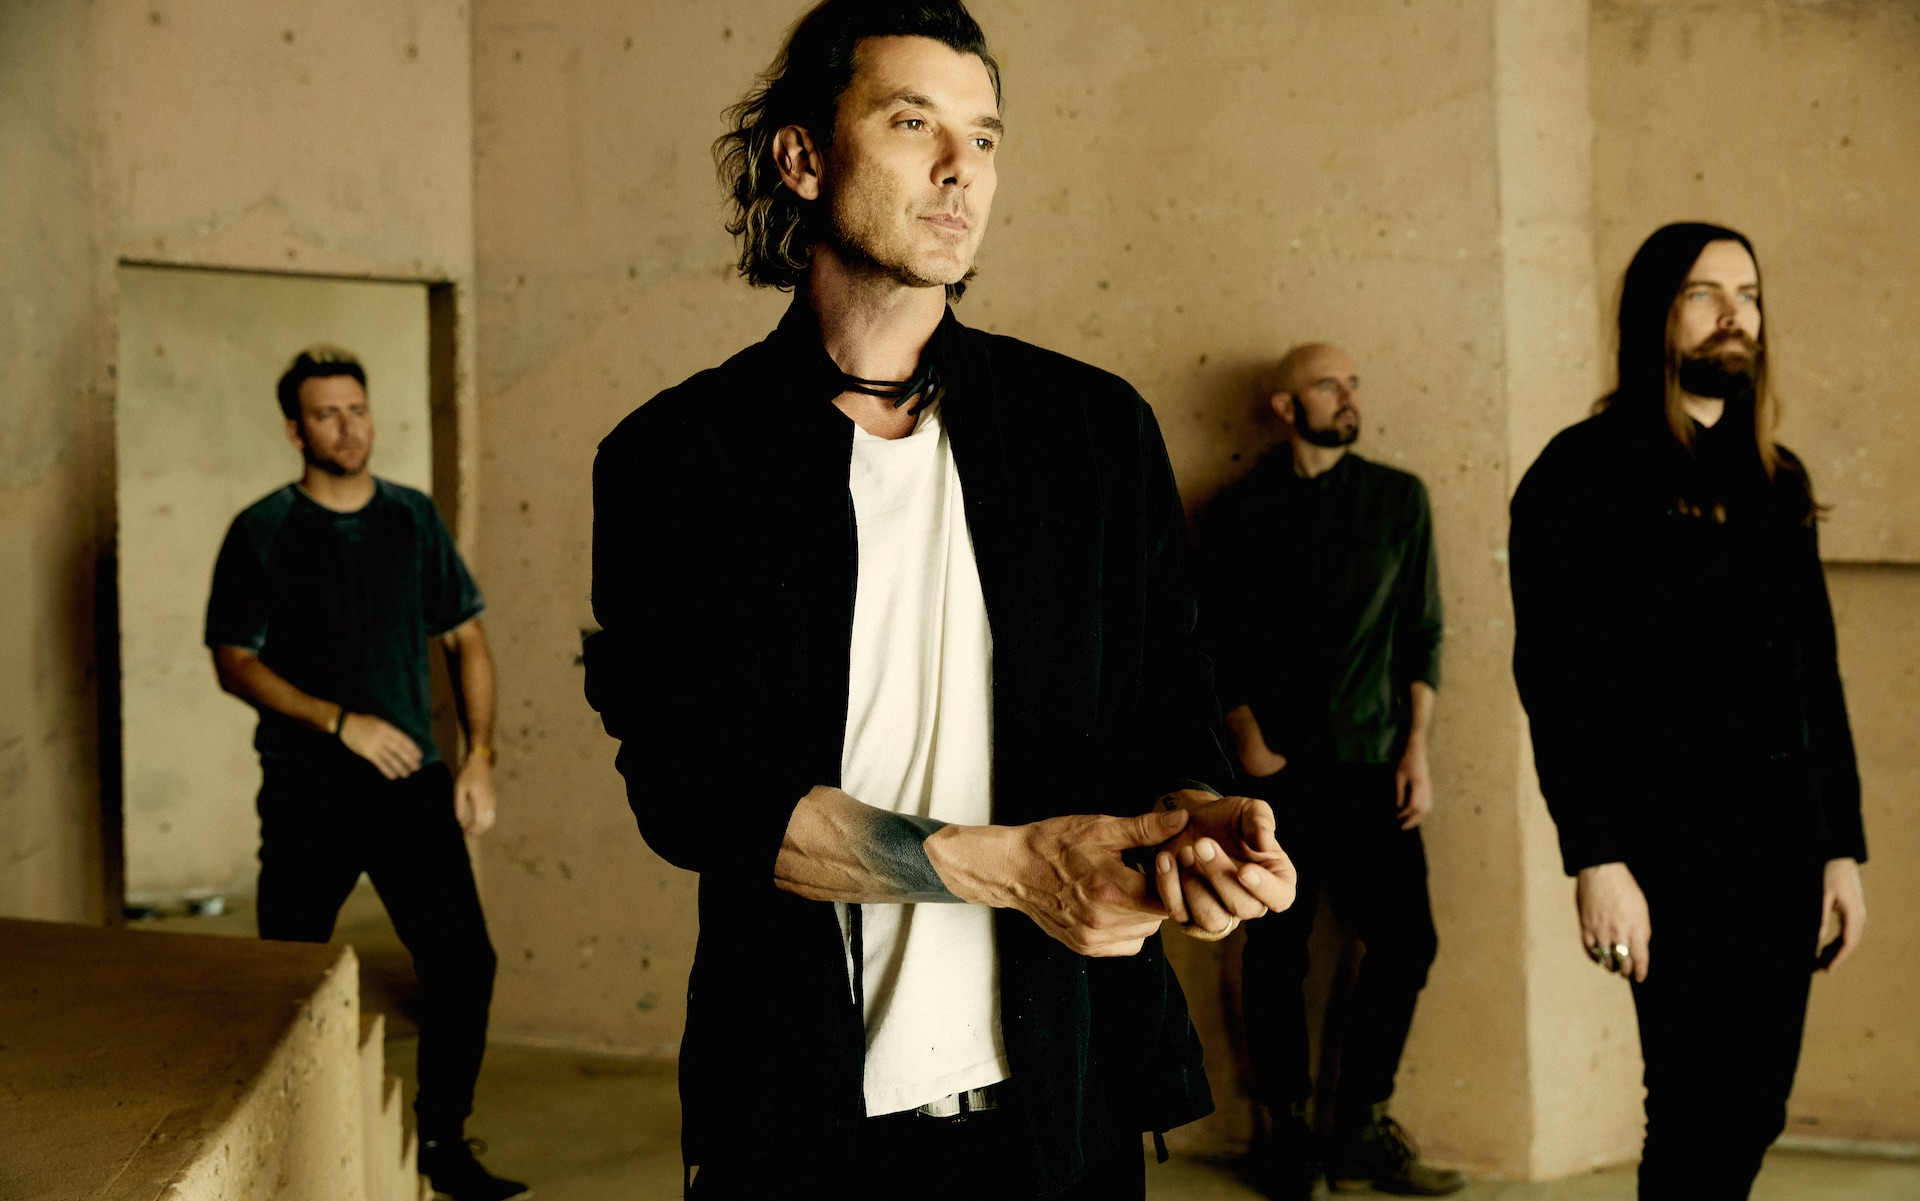 Gavin Rossdale on 25 Years of Bush, Jamming with His Children, and More